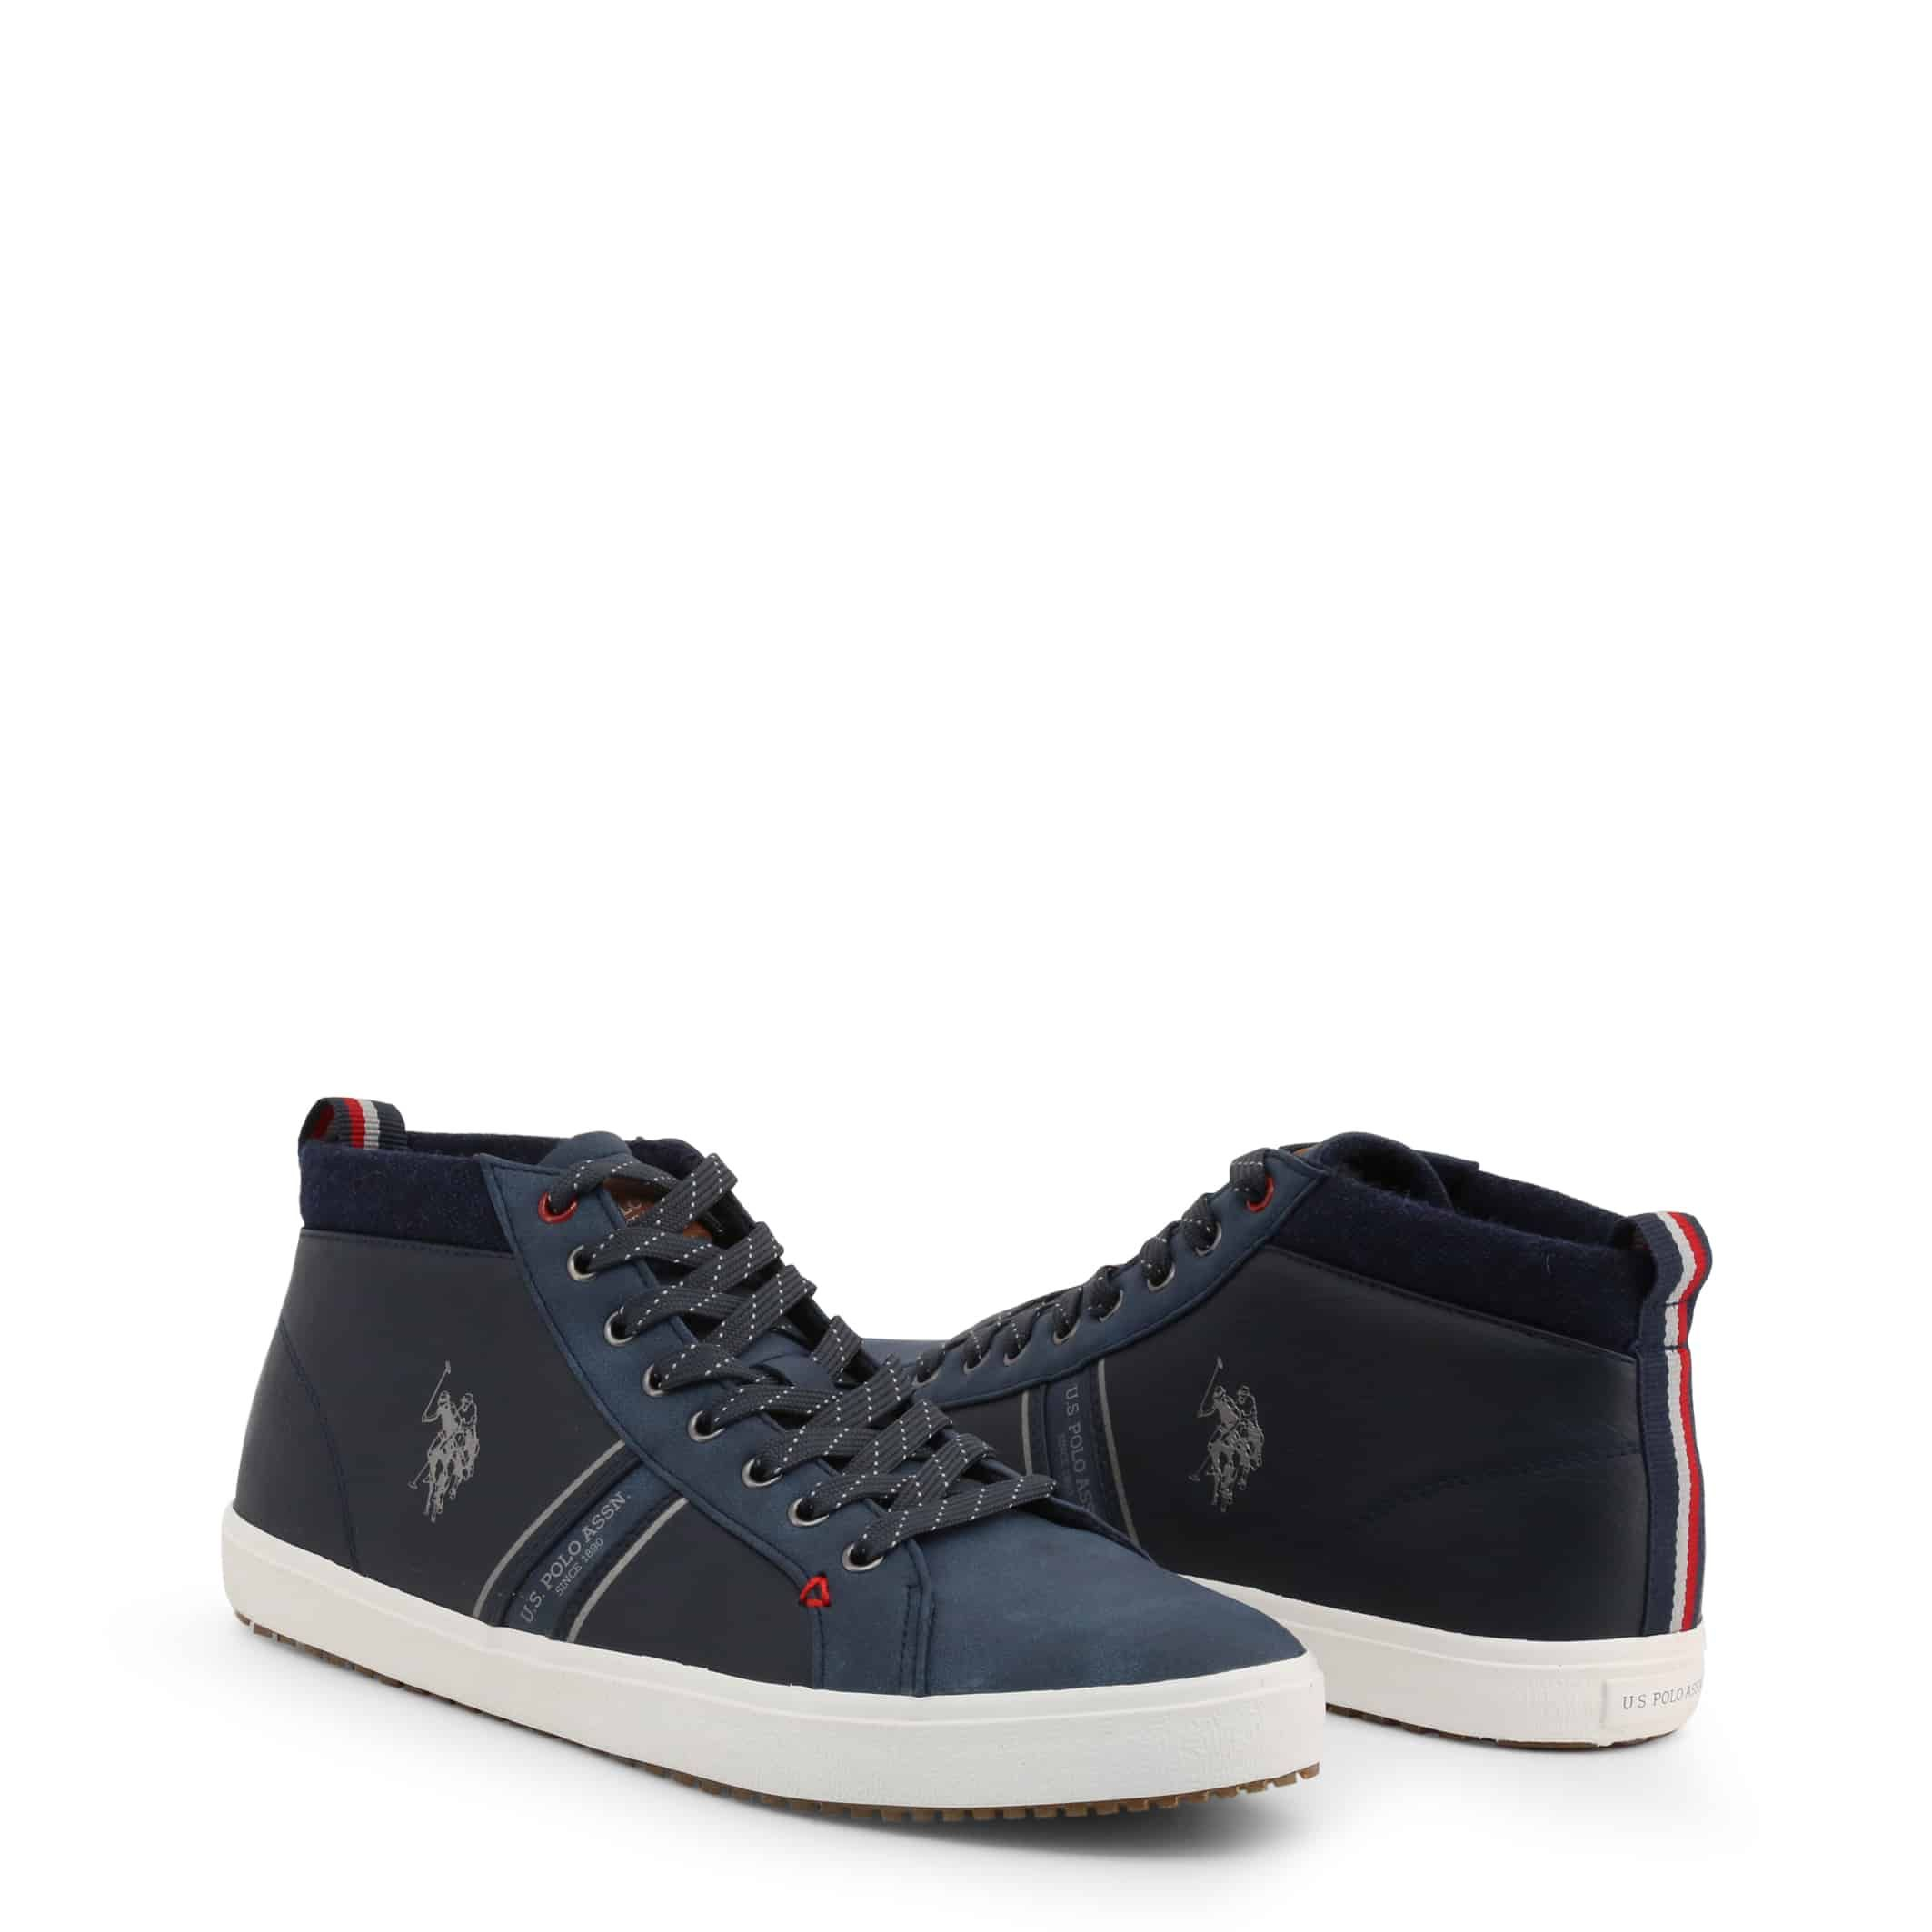 U.S. Polo Assn. - WOUCK7147W9_Y1  | You Fashion Outlet